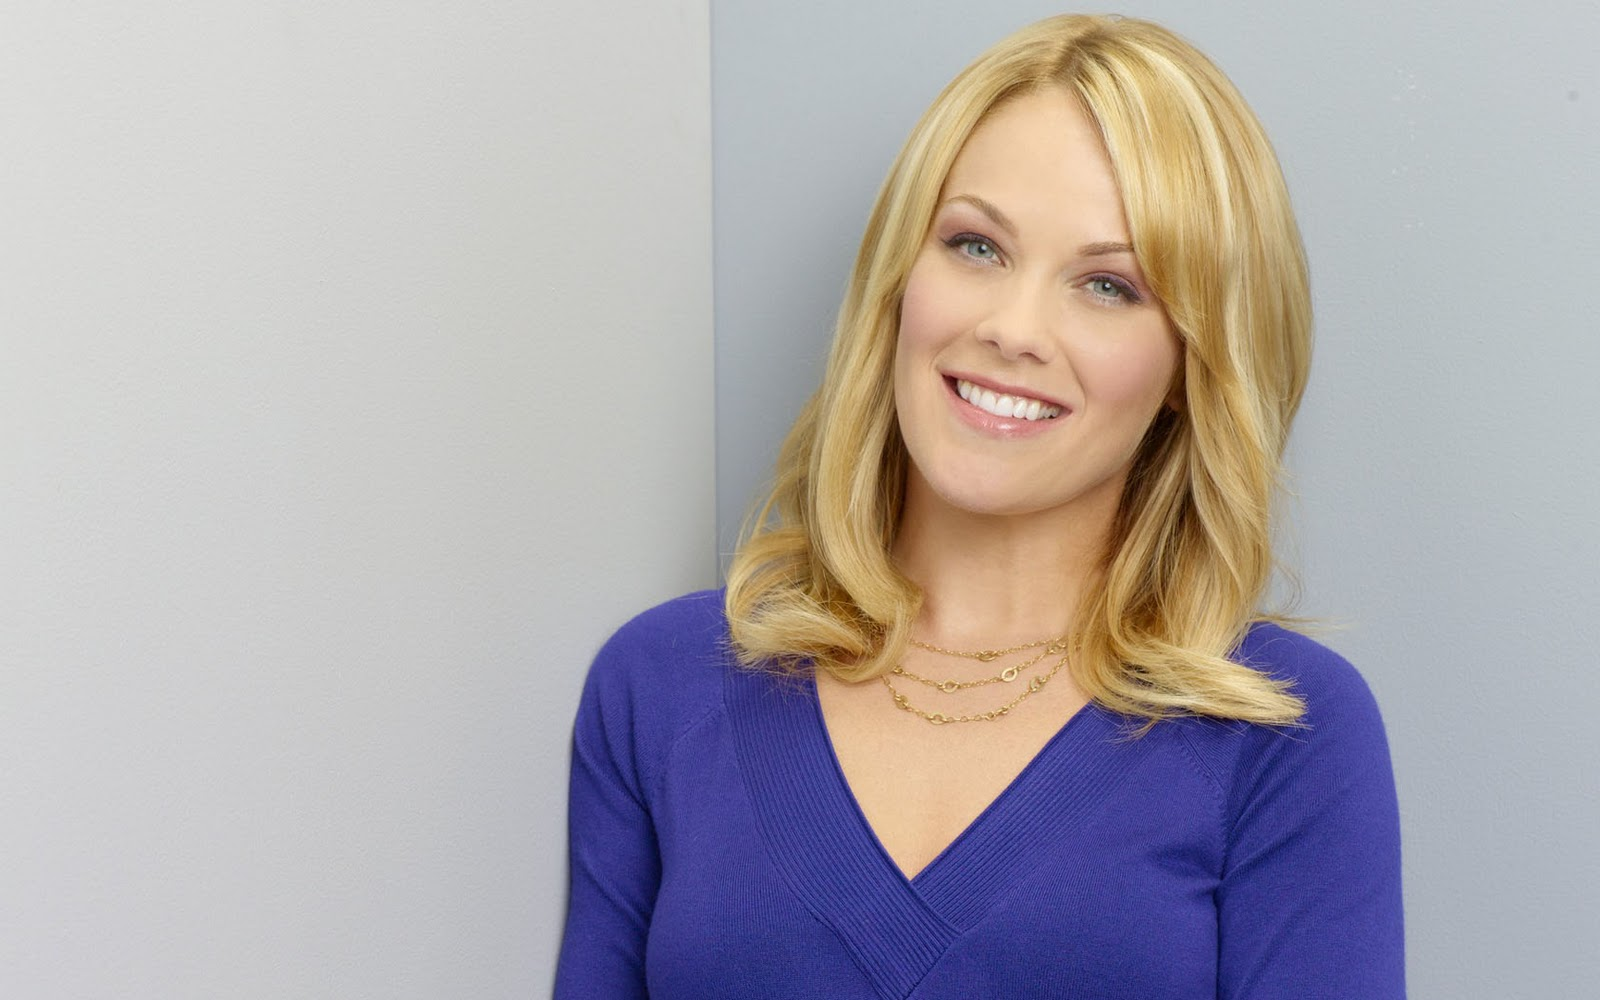 Andrea Anders Hot hot actress image and wallpapers: andrea anders wallpapers